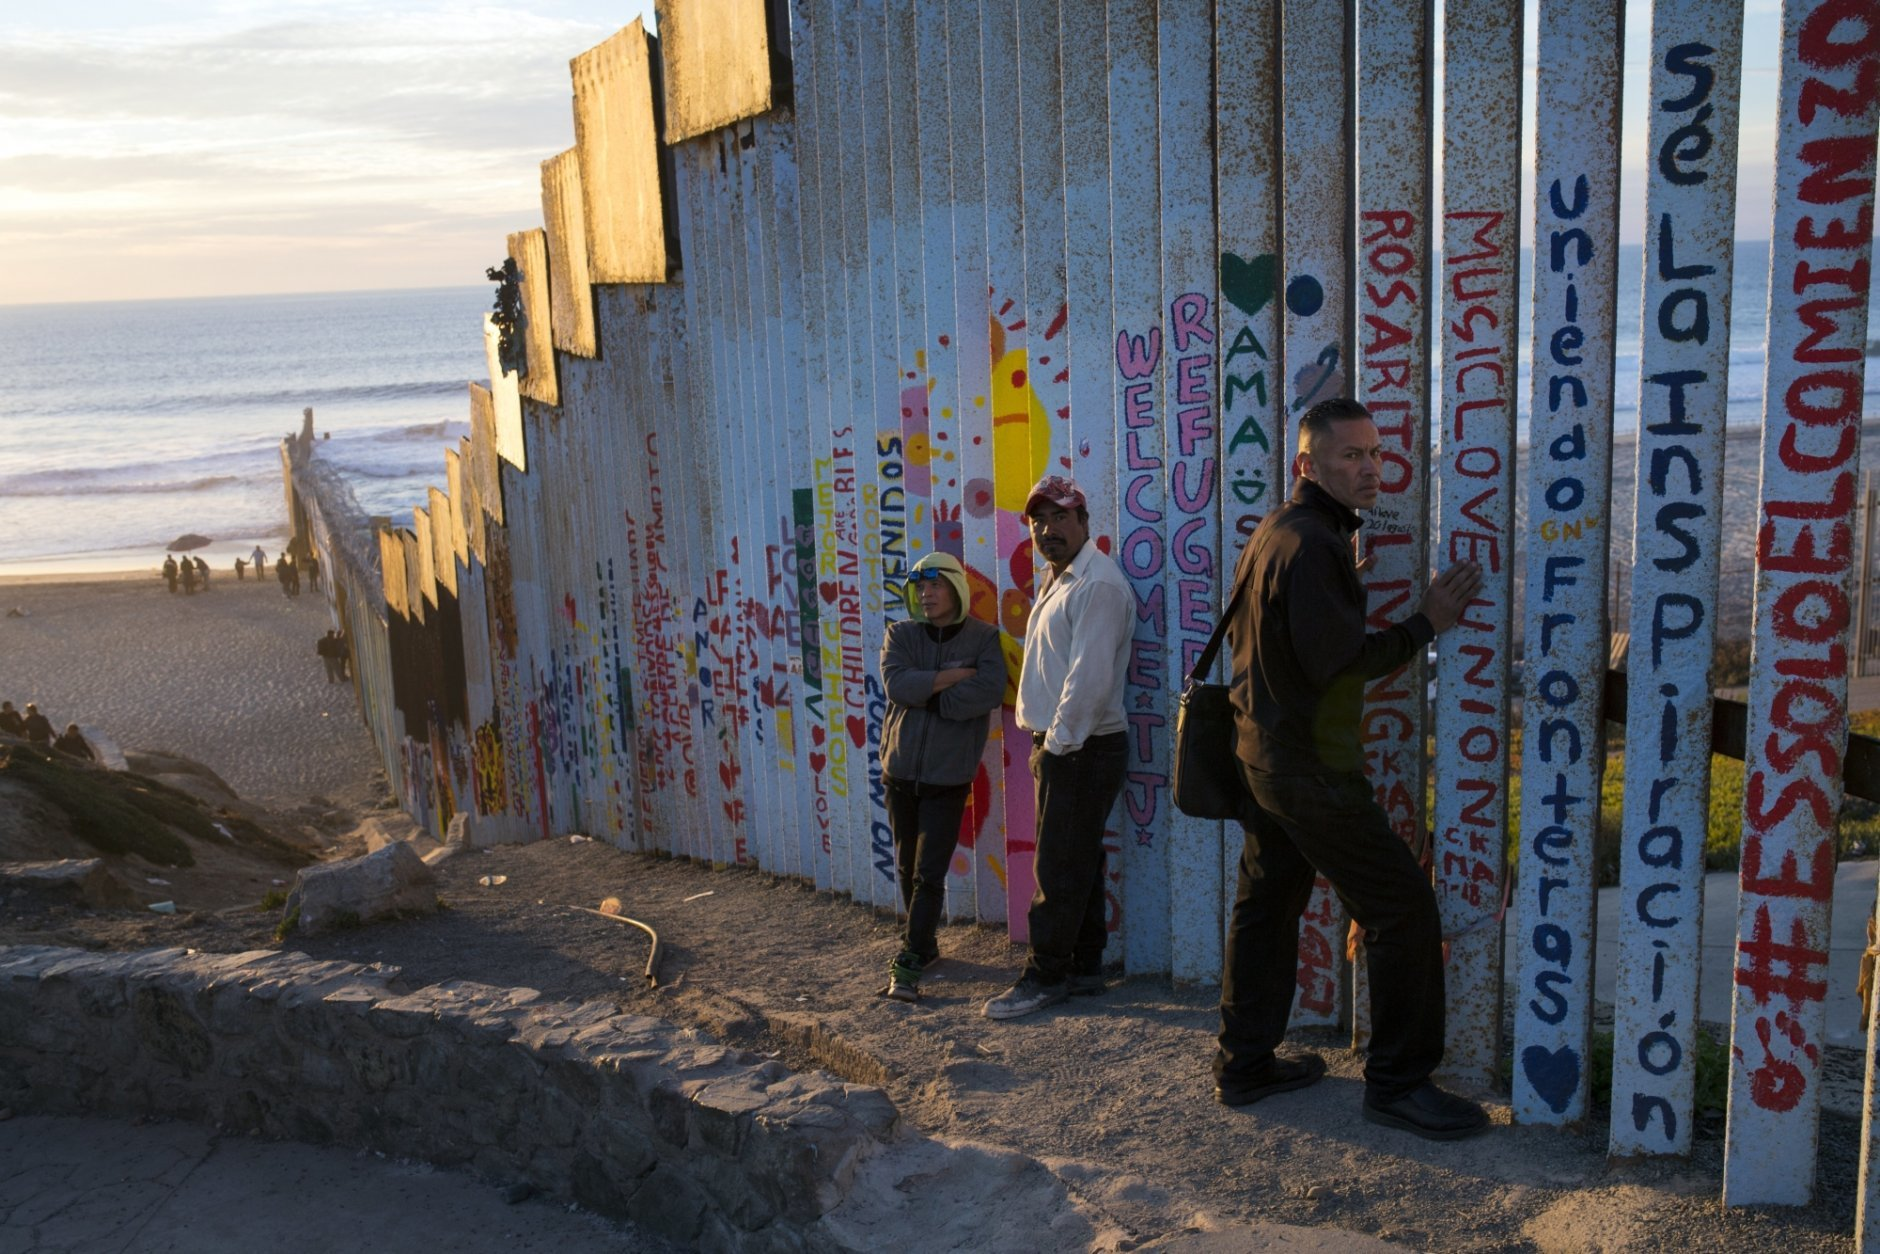 People hang out at the Mexican side of the border structure that separates Mexico from the U.S., at the Pacific Ocean, Tijuana, Mexico, Friday, Nov. 16, 2018. As thousands of migrants in a caravan of Central American asylum-seekers converge on the doorstep of the United States, what they won't find are armed American soldiers standing guard. (AP Photo/Rodrigo Abd)